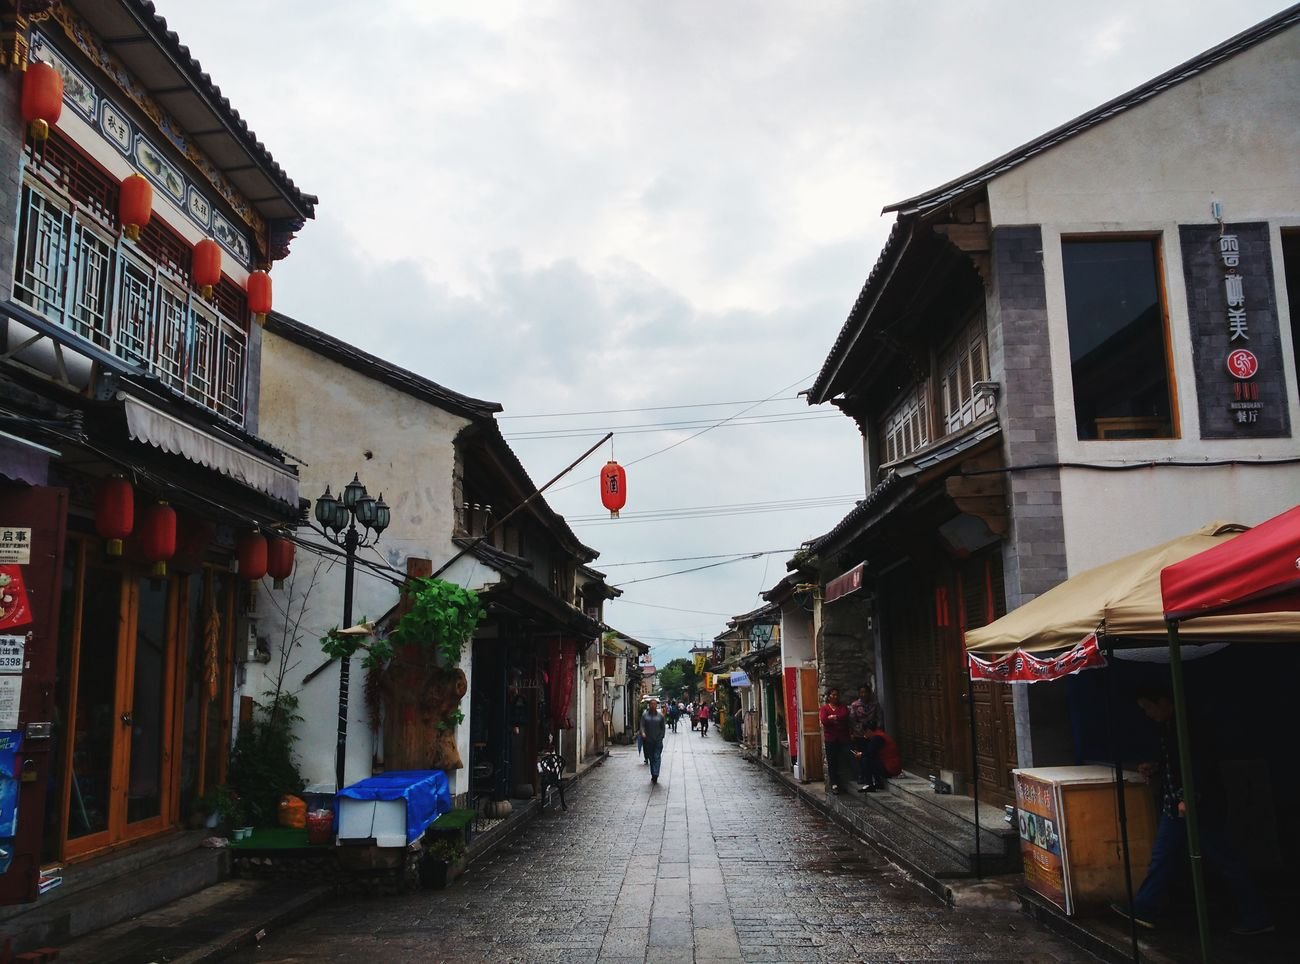 Cityscapes Photos 365 Dalí 大理 My Hometown Streetphotography Landscape Hometown Holiday Street Life